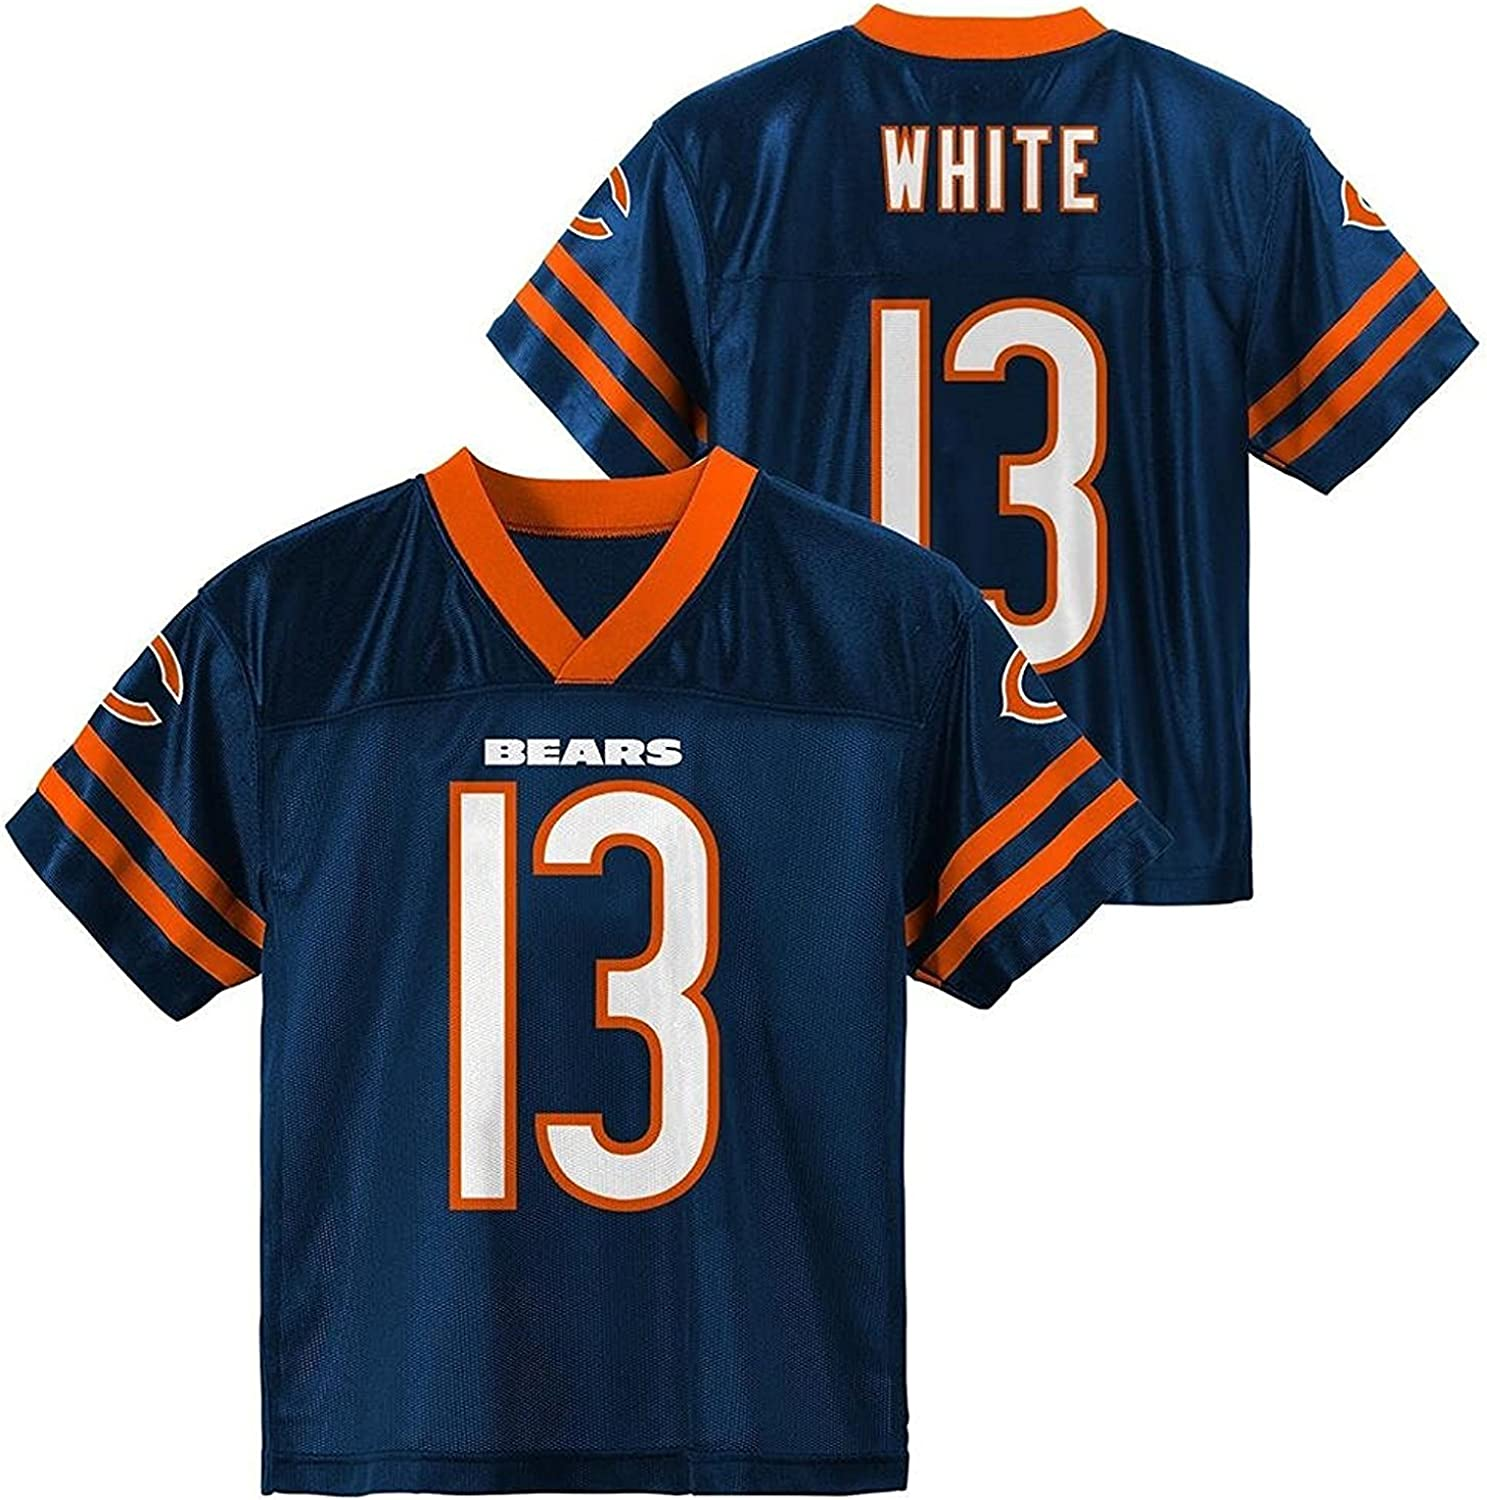 Outerstuff Kevin White Chicago Bears Navy Blue #13 Infants Home Player Jersey